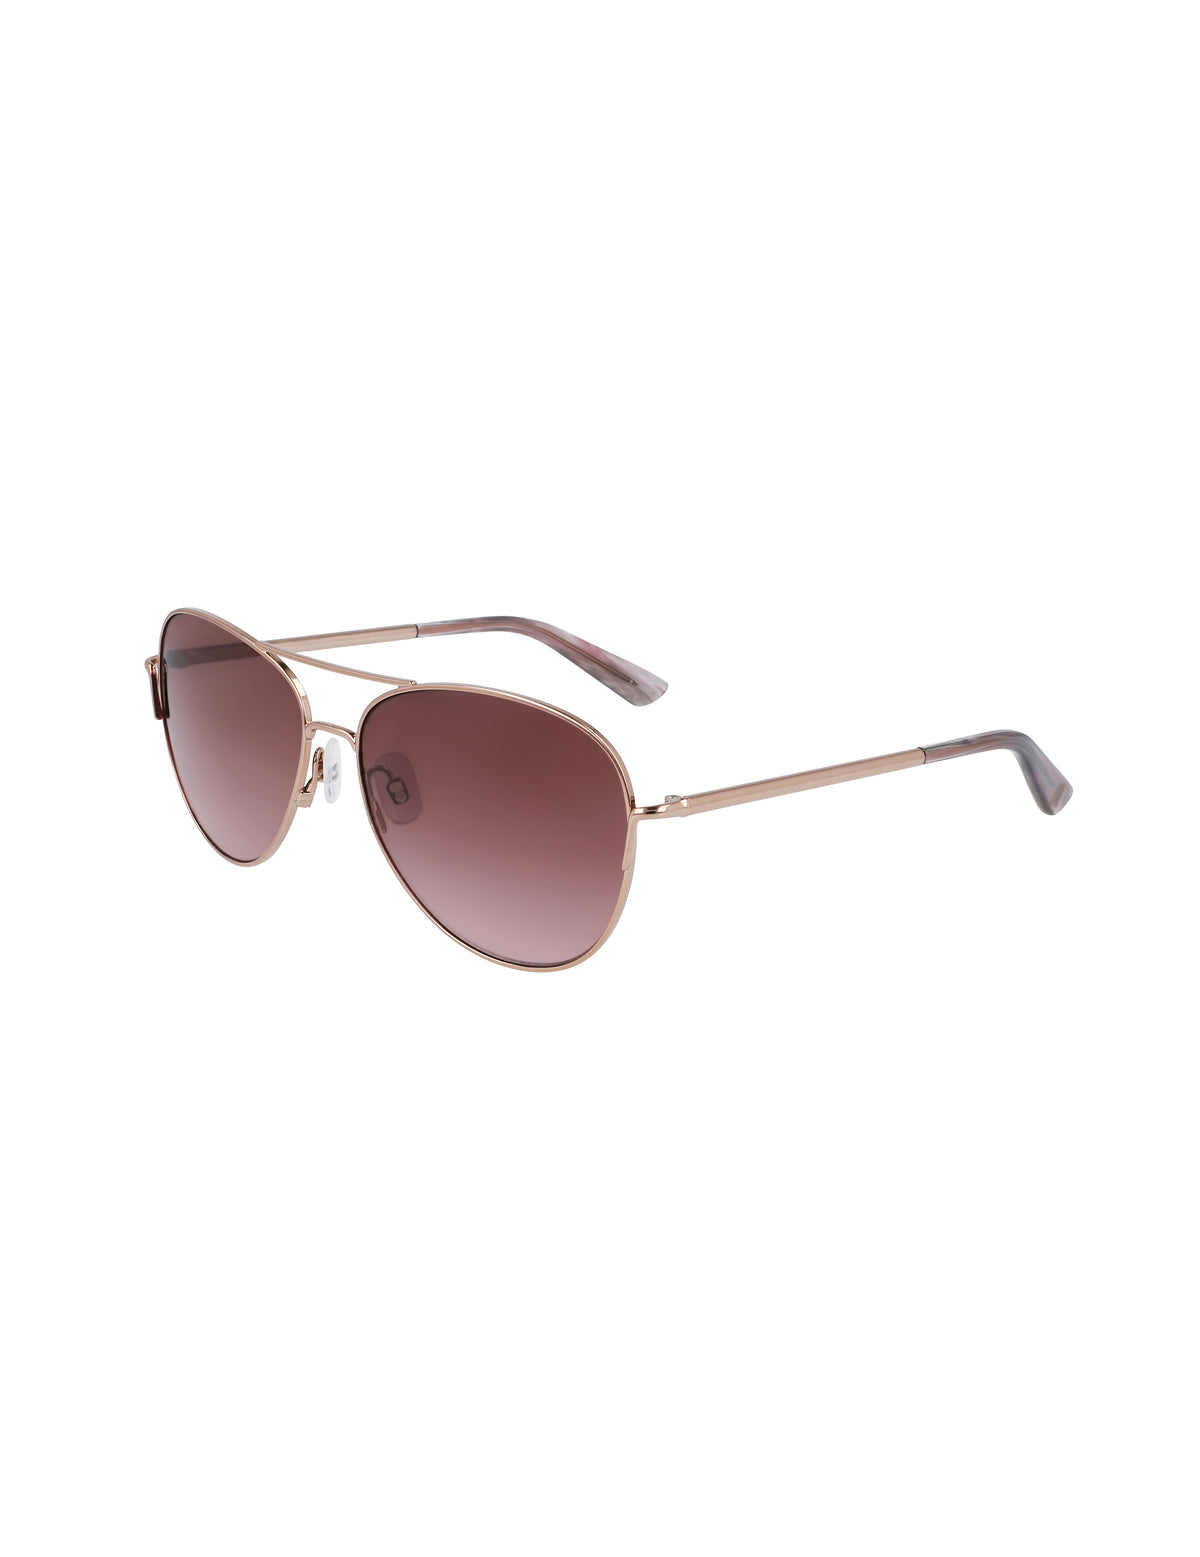 Rose Gold Tone Classic Aviator Sunglasses